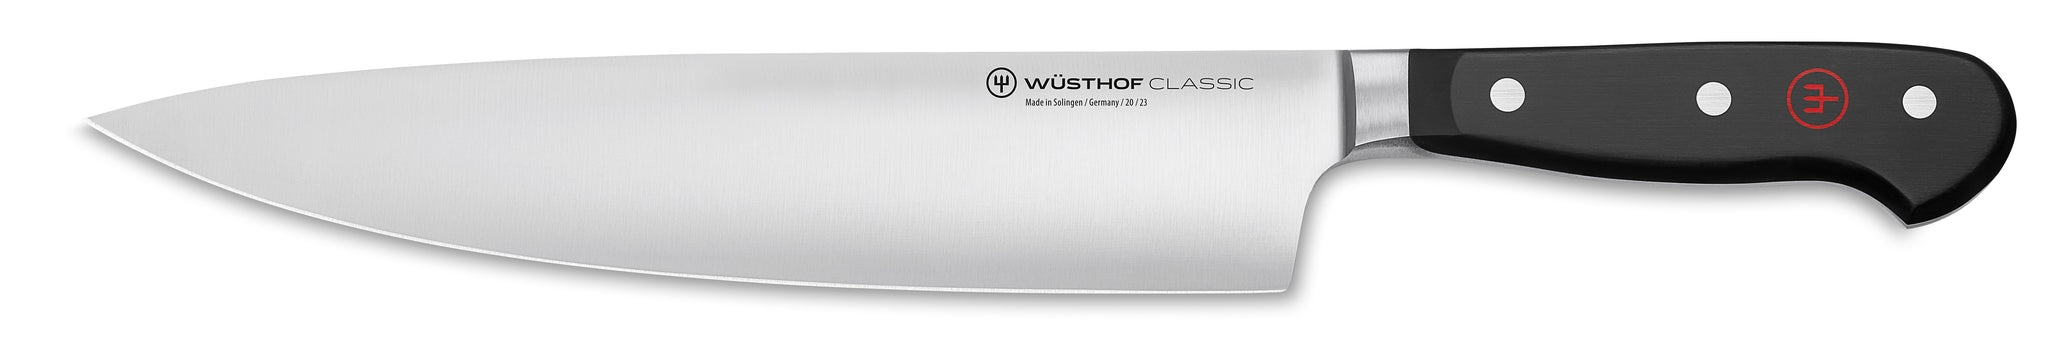 "Wusthof Classic 9"" Cook's, Demi-Bolster"